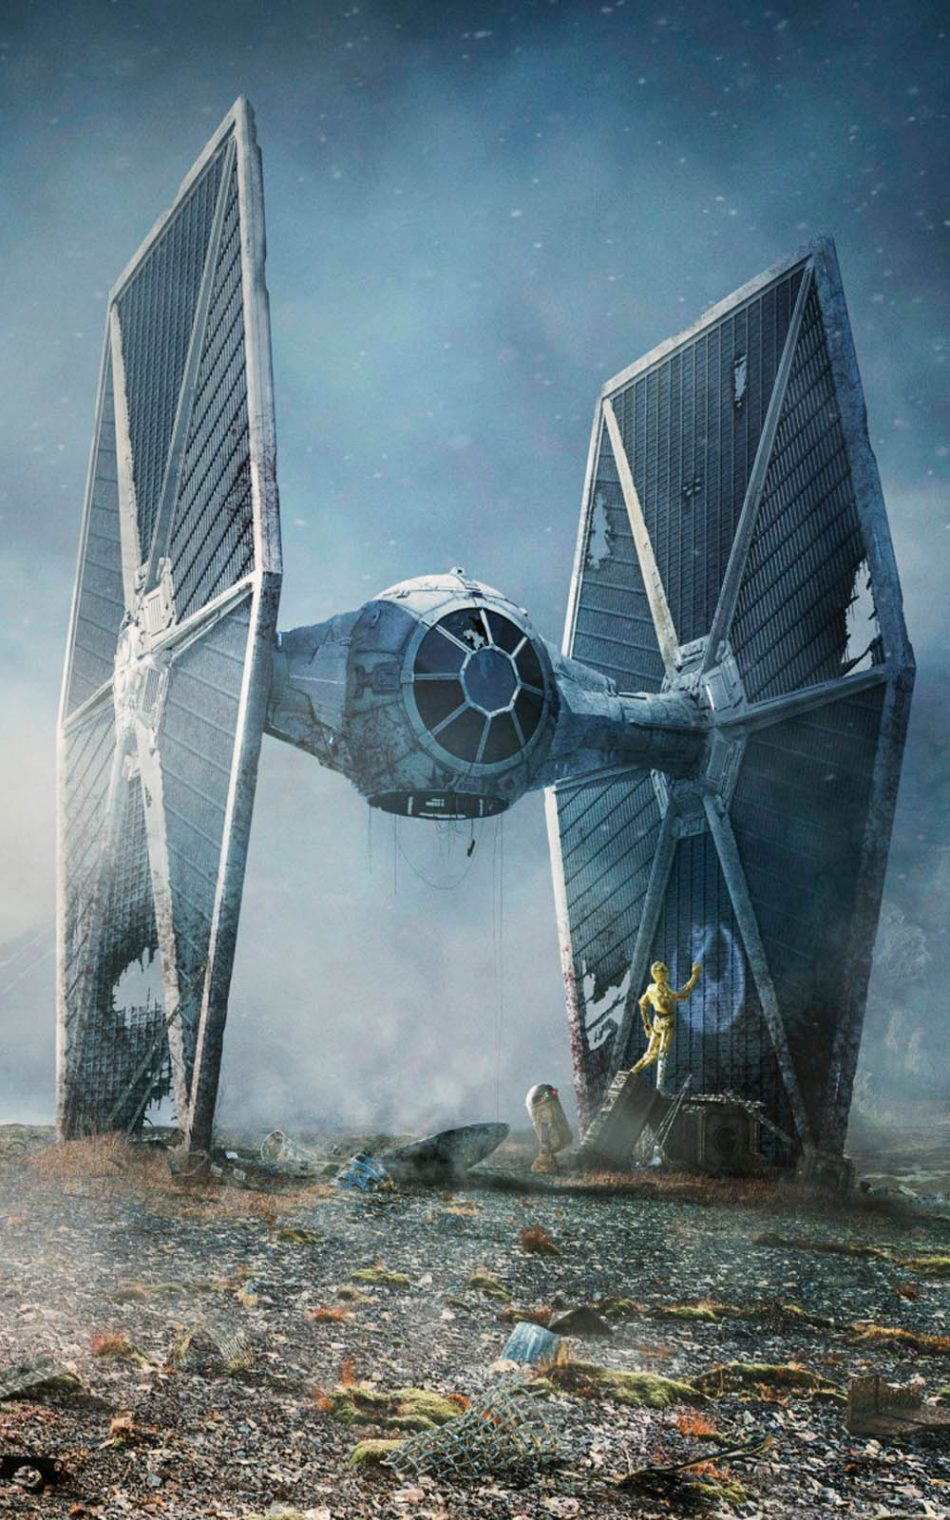 Star Wars Wallpaper Mobile Posted By Zoey Johnson